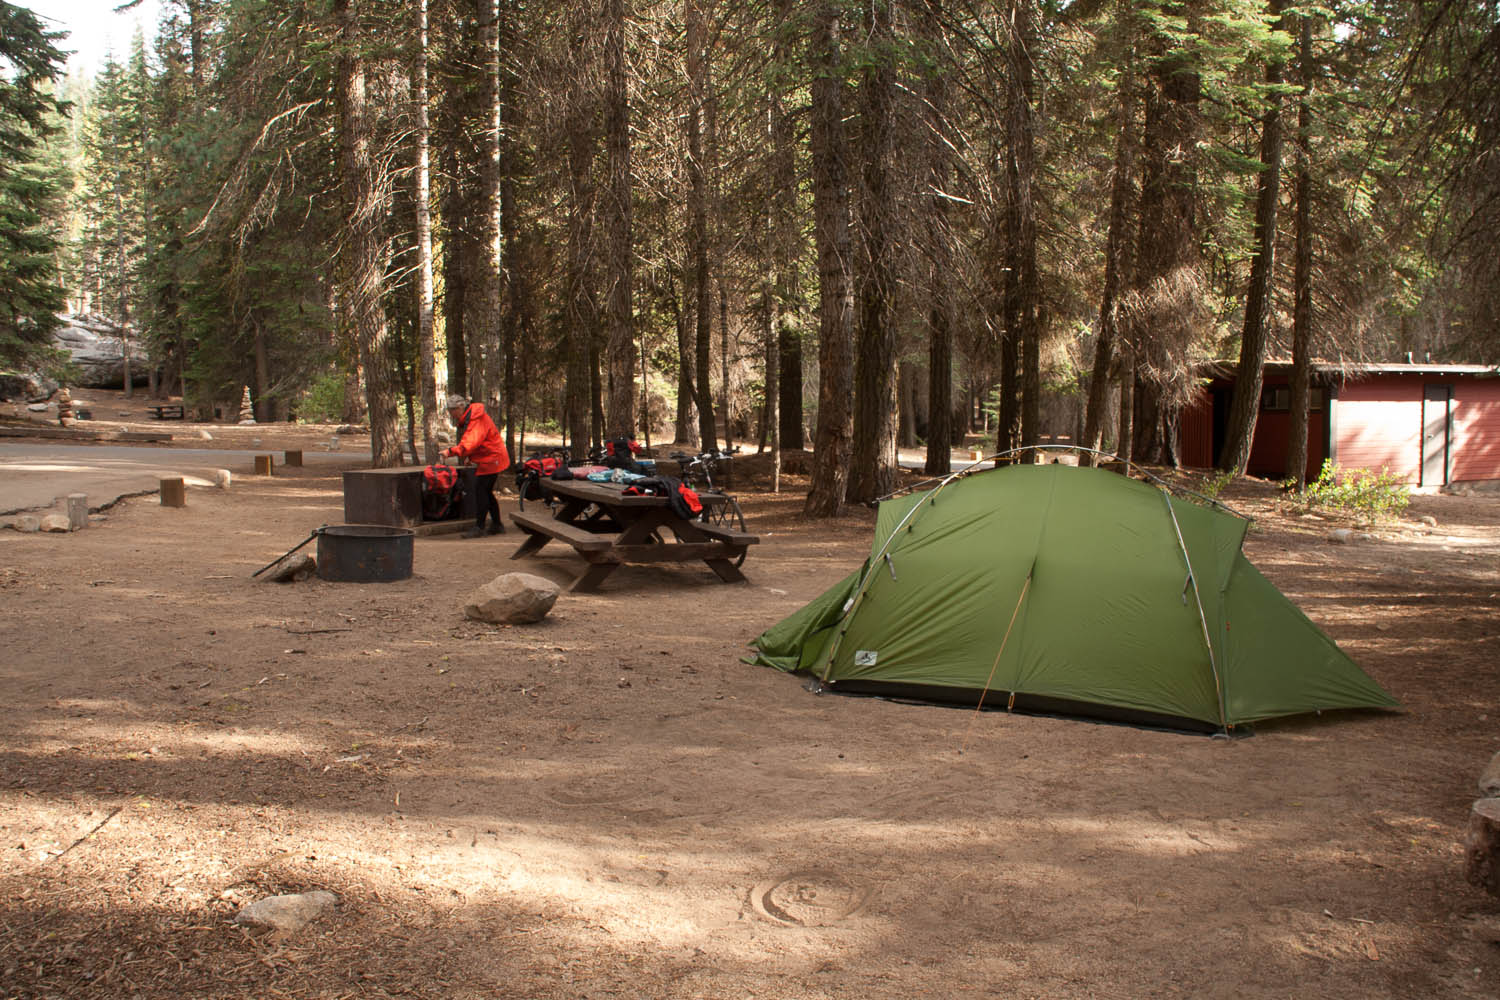 Typical NP campsite